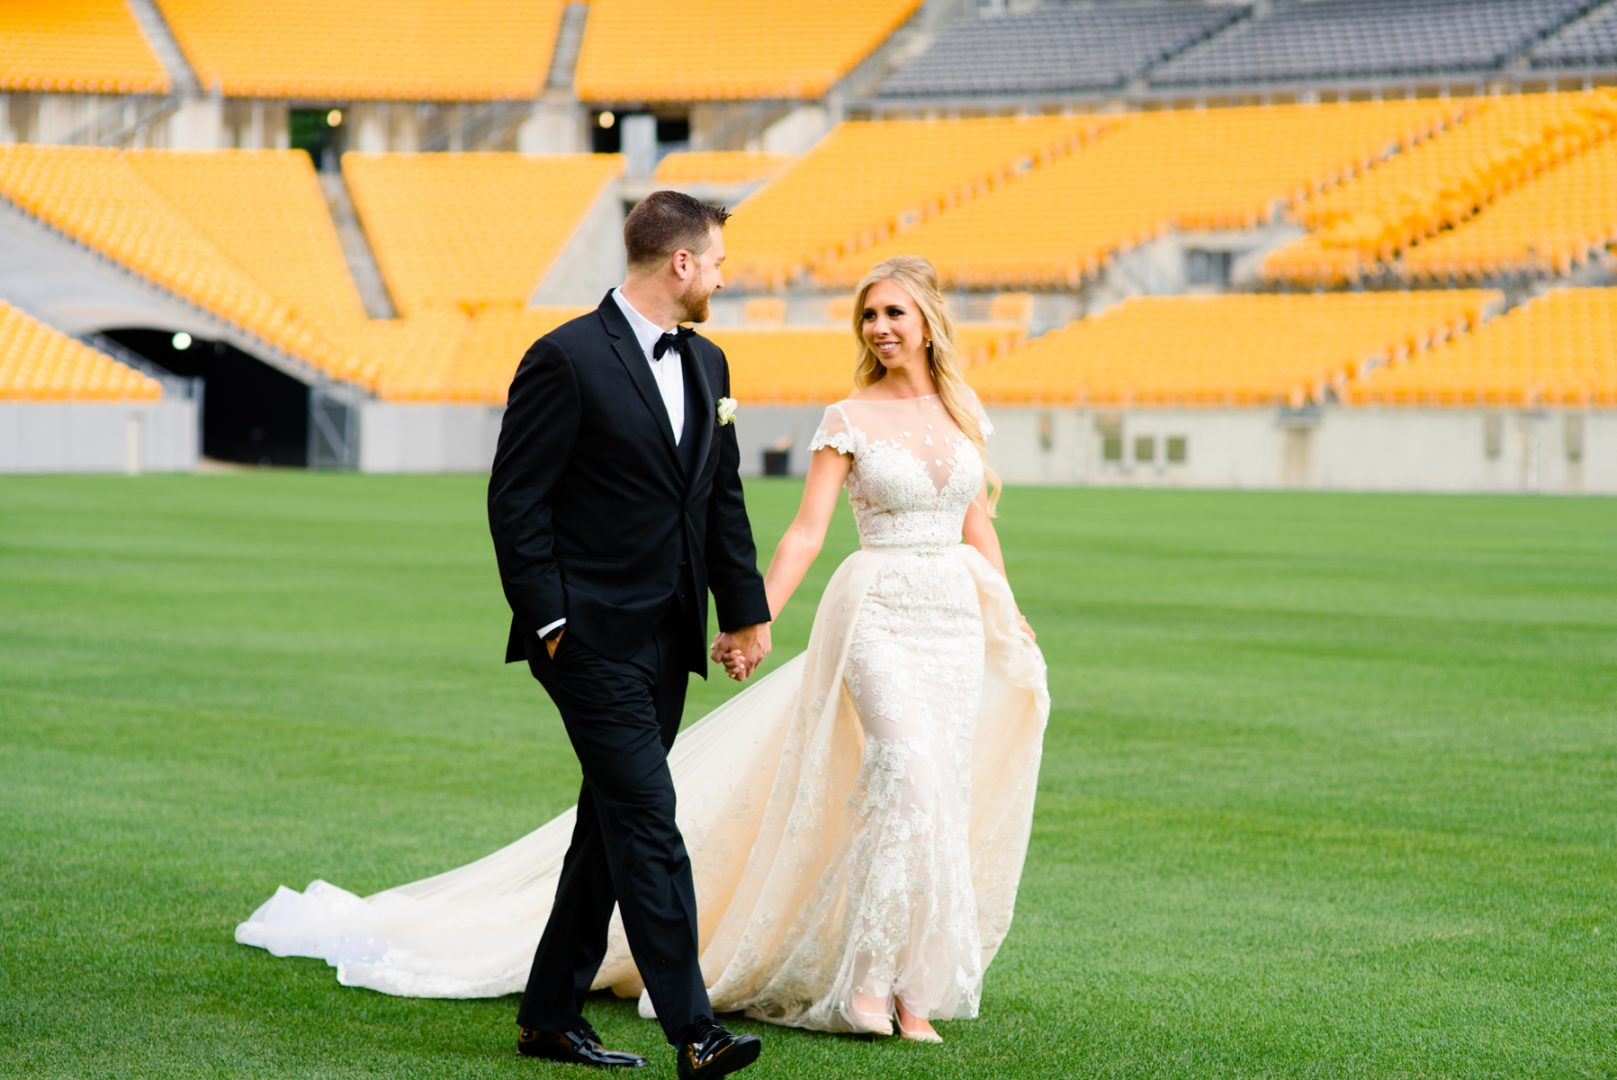 Wedding portraits on Heinz field